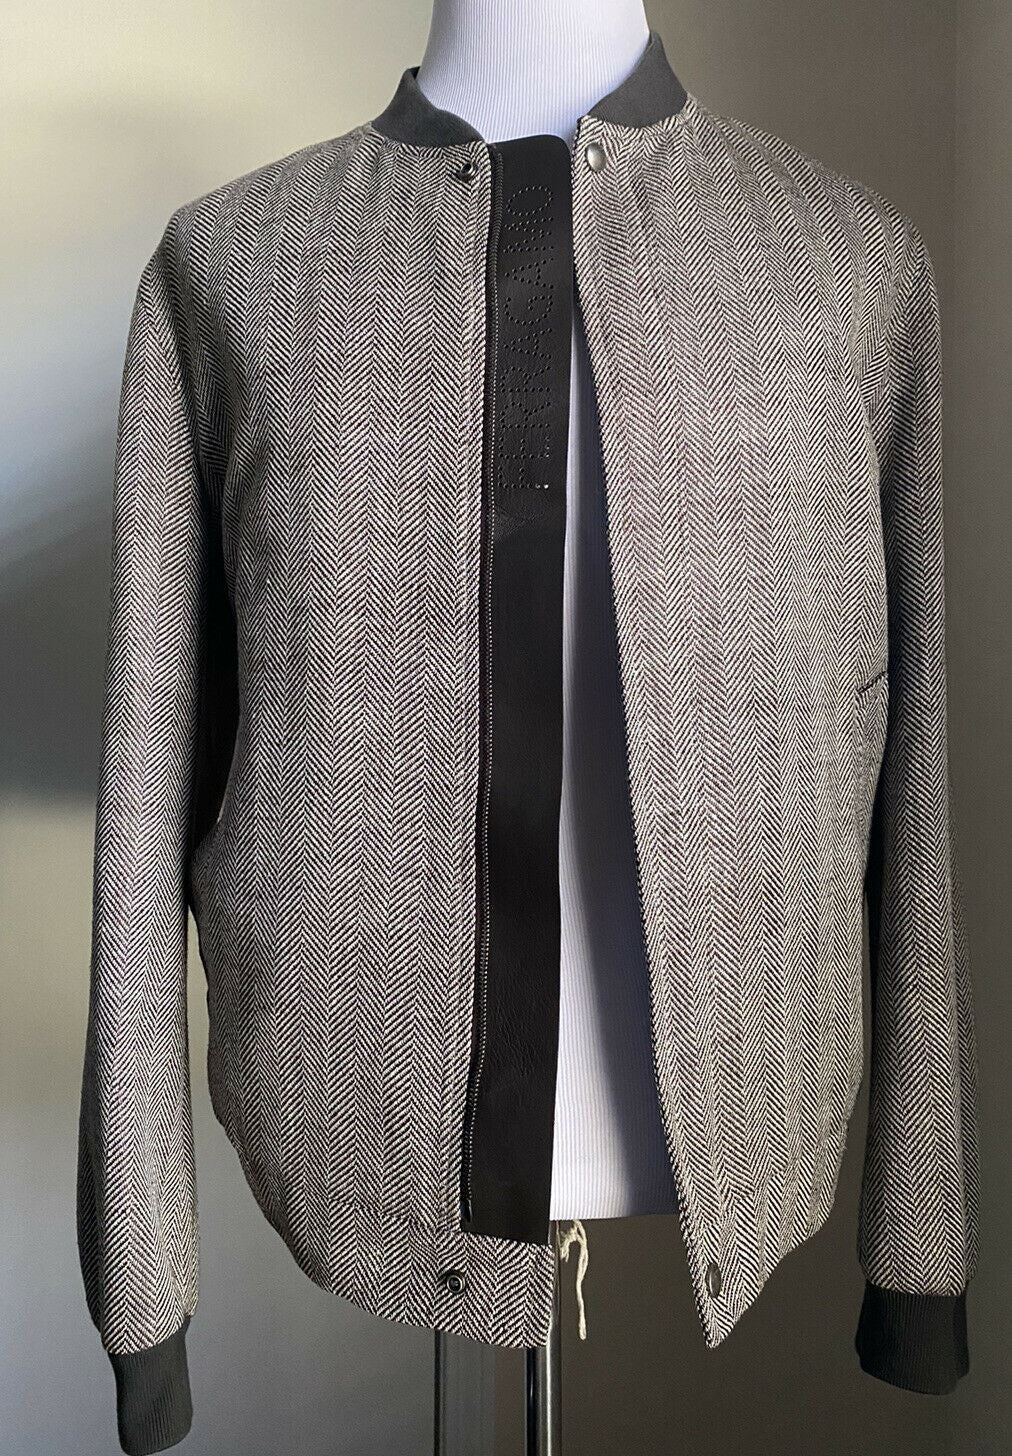 New $1850 Salvatore Ferragamo Mens Jacket Coat Brown 42 US (52 Eu) Italy